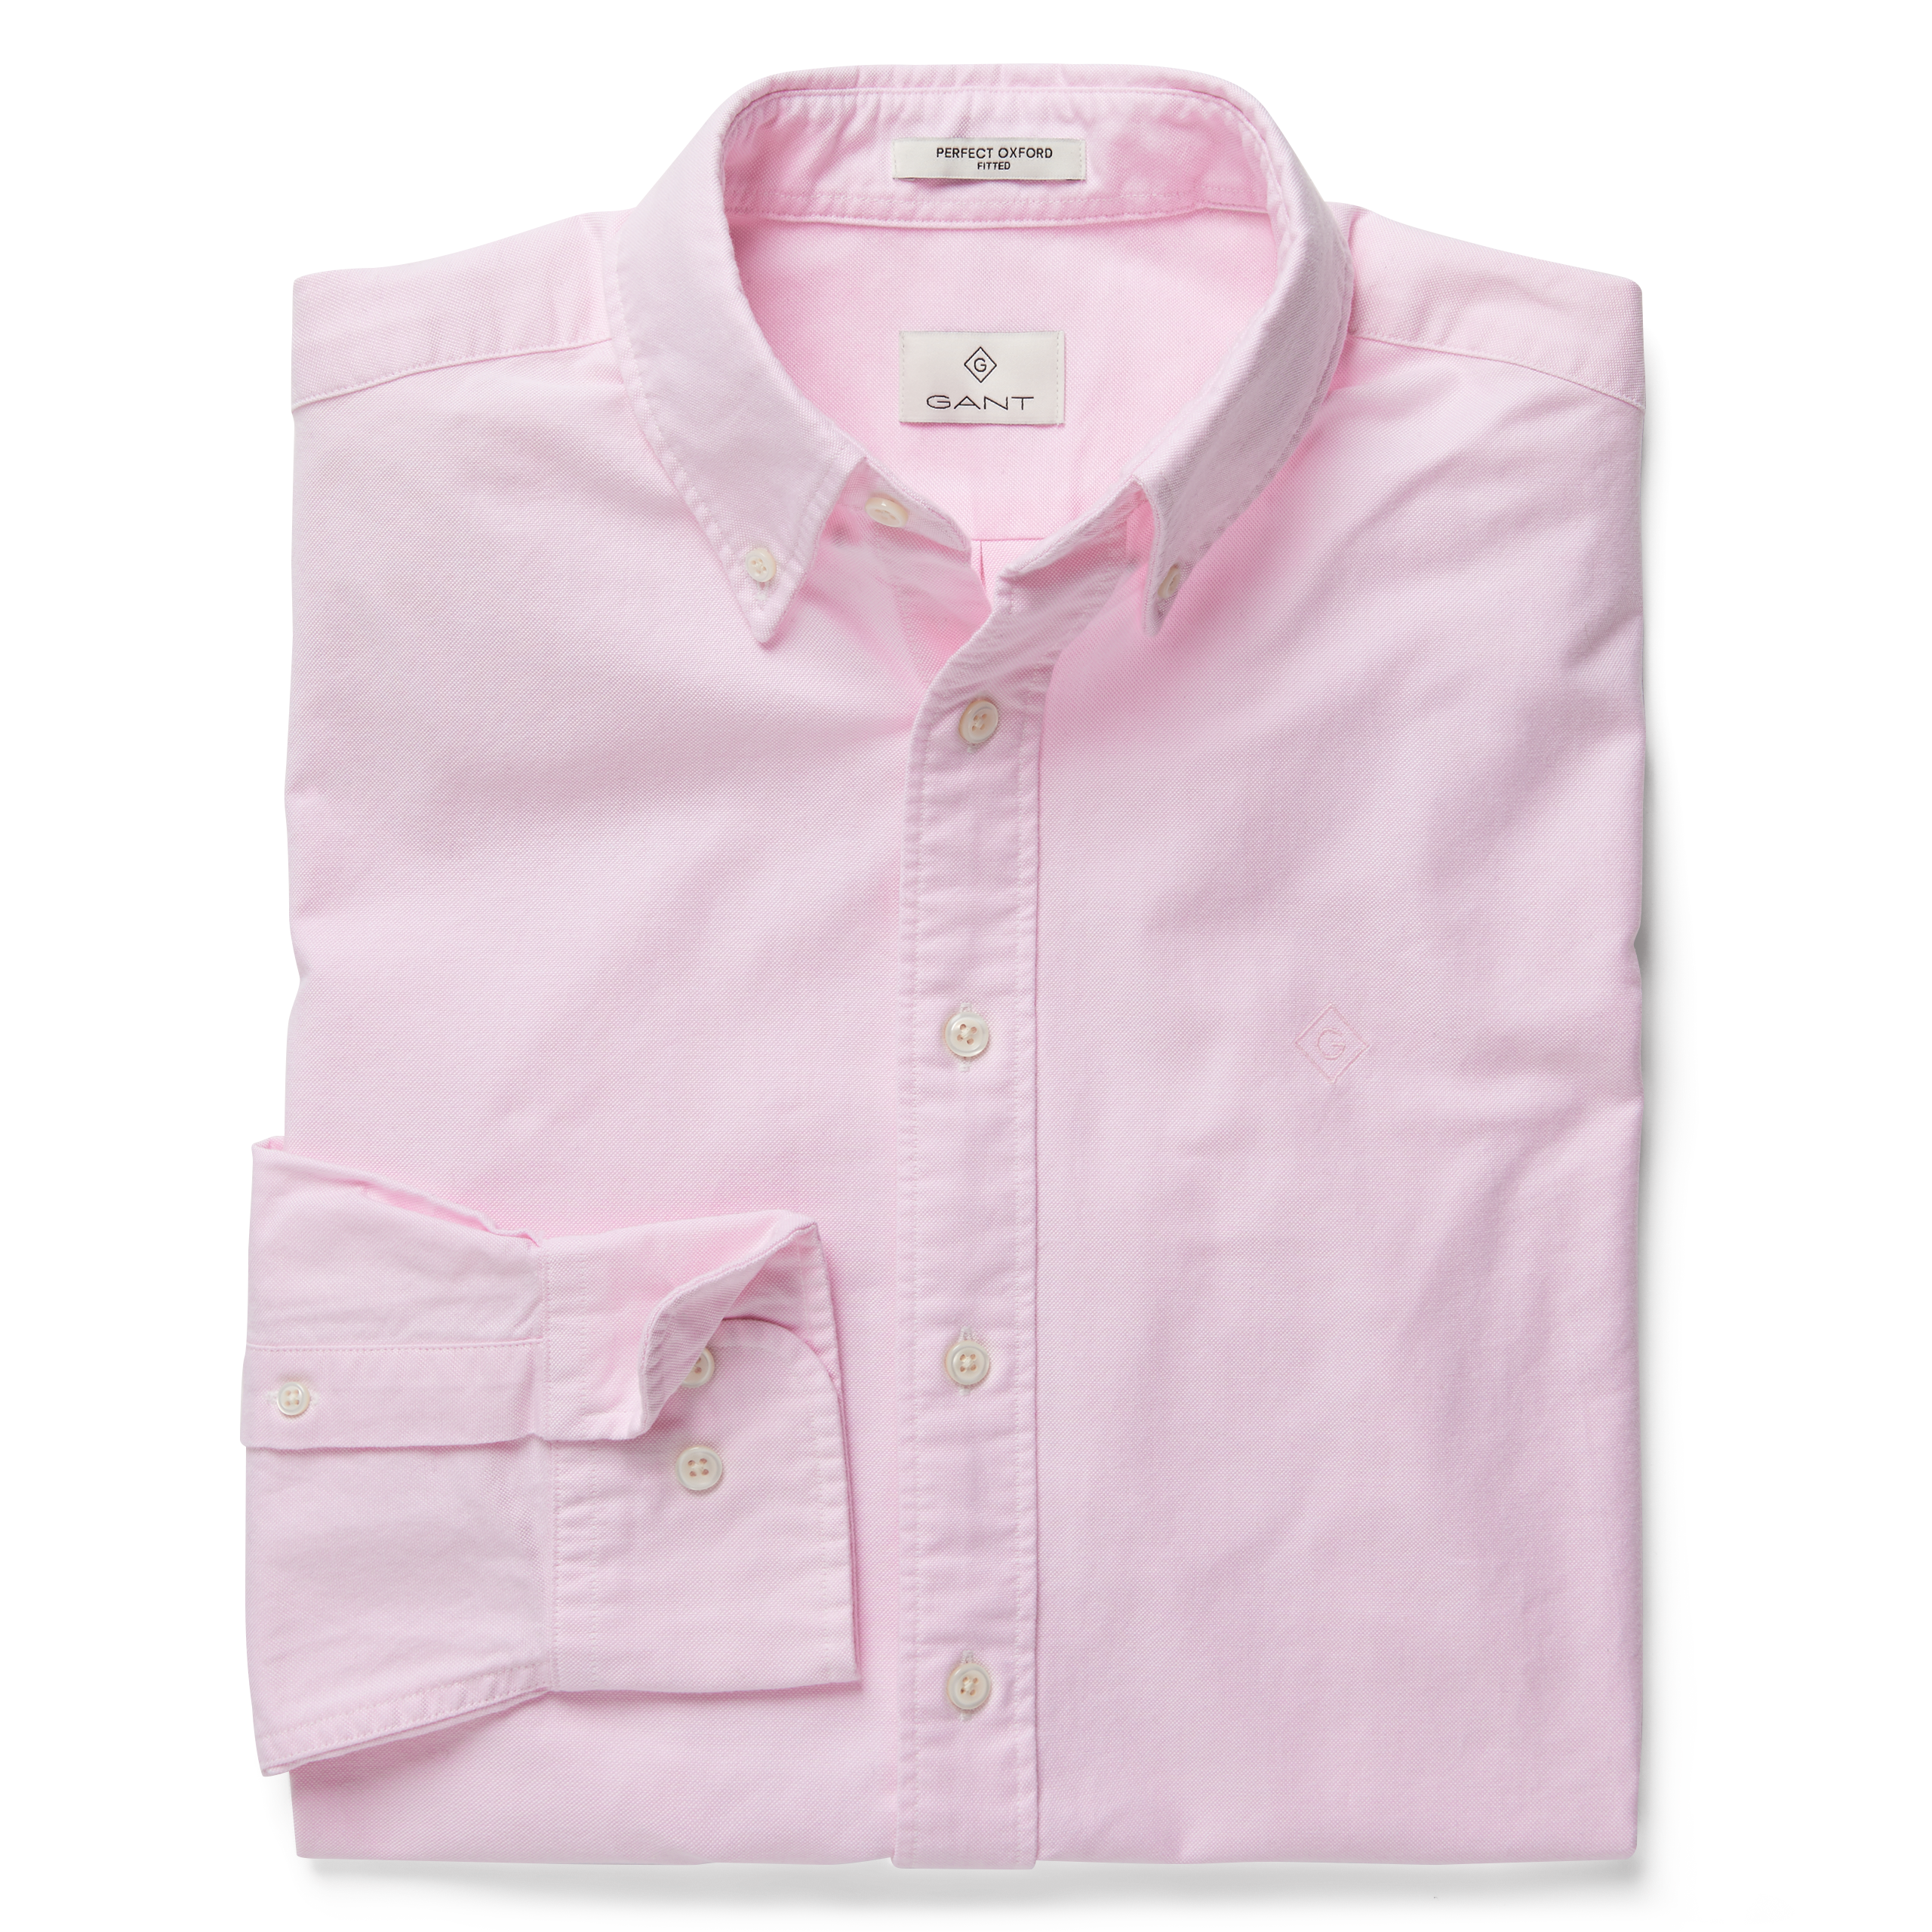 GANT Pastel Pink Regular Fit Oxford Shirt